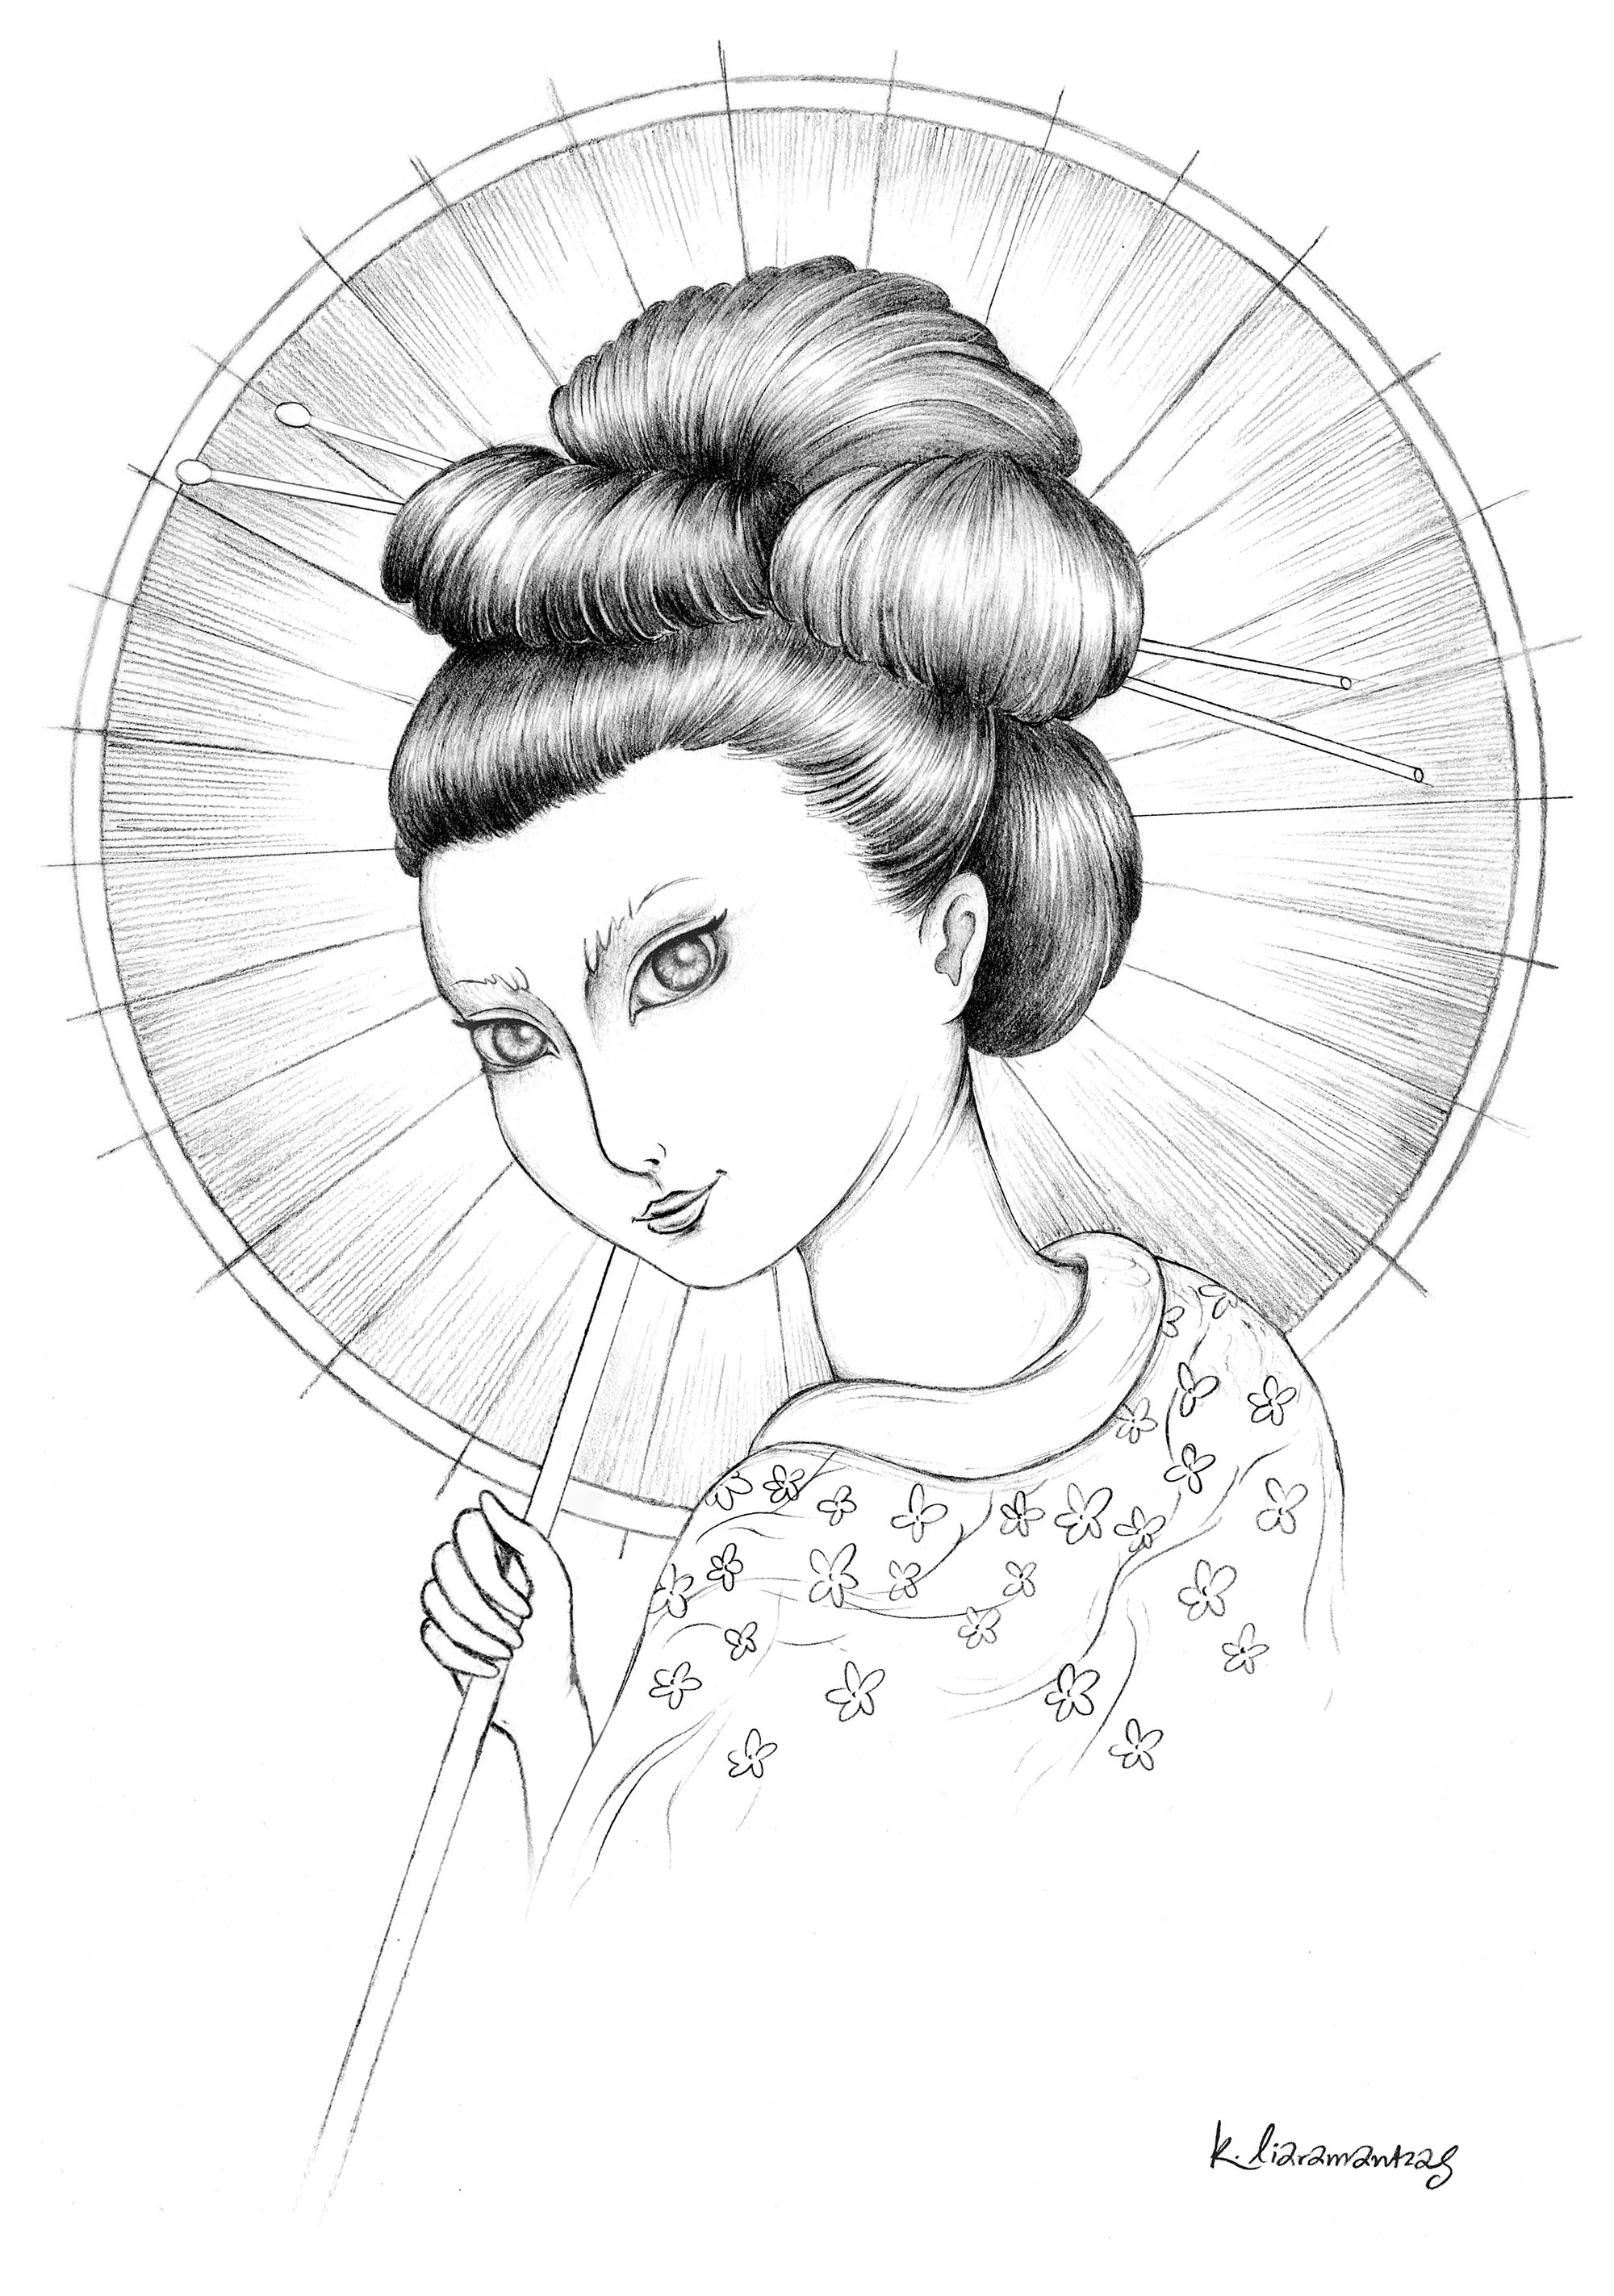 Simple portrait of a Geisha, with her cute umbrella